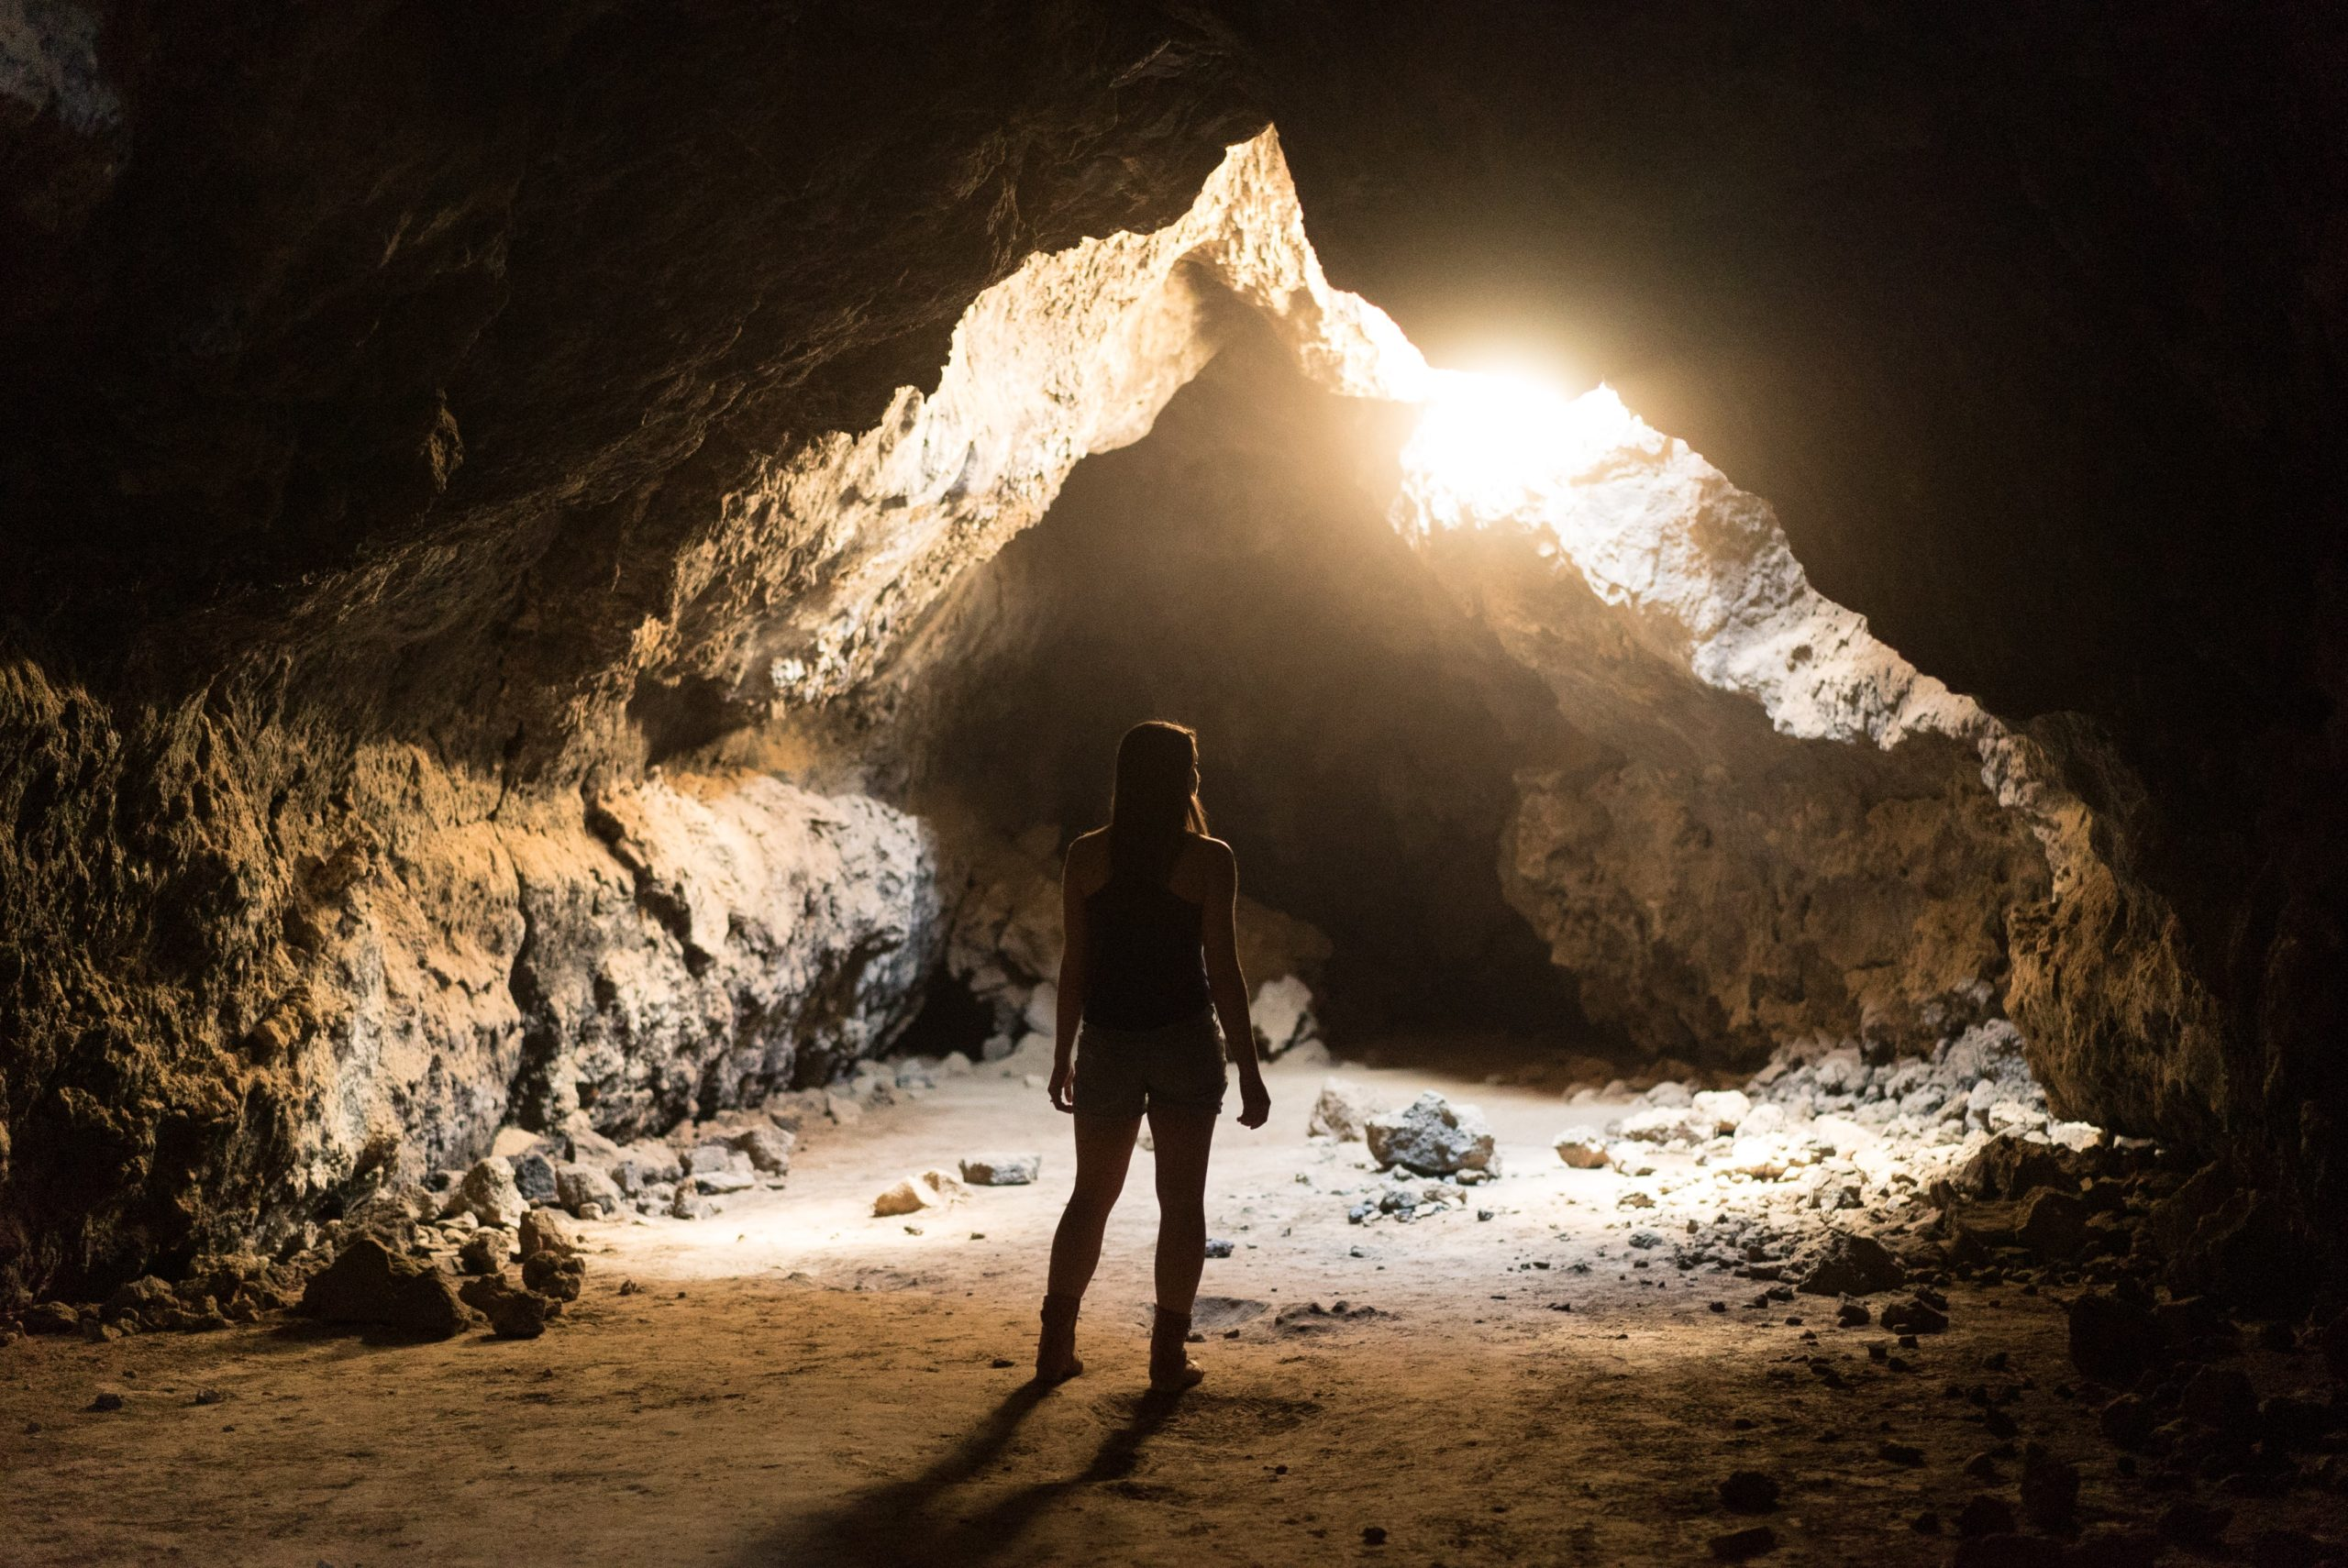 silhouette-of-a-woman-at-the-mouth-of-a-cave-with-light-streaming-in